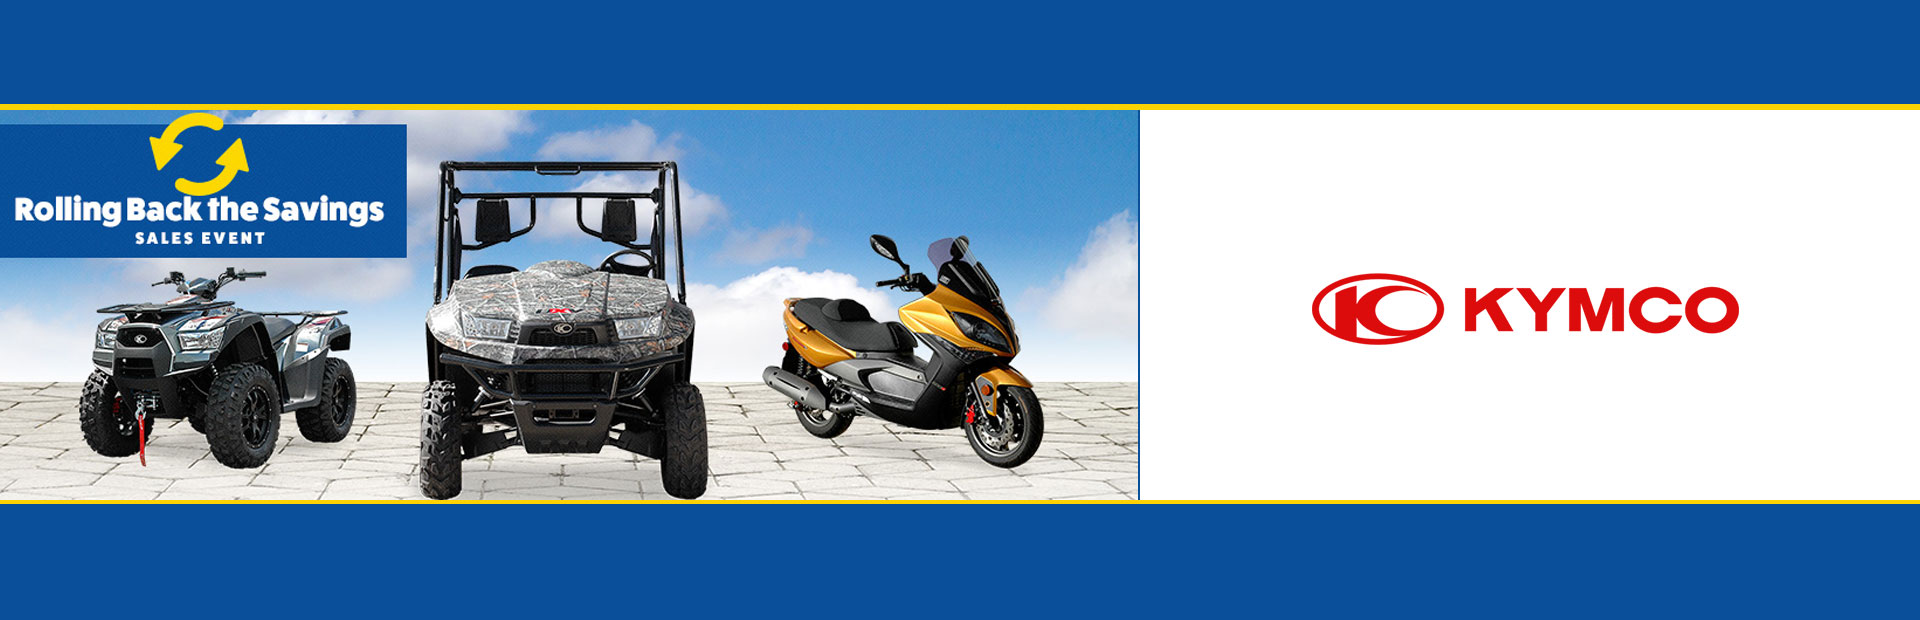 KYMCO: Rolling Back the Savings